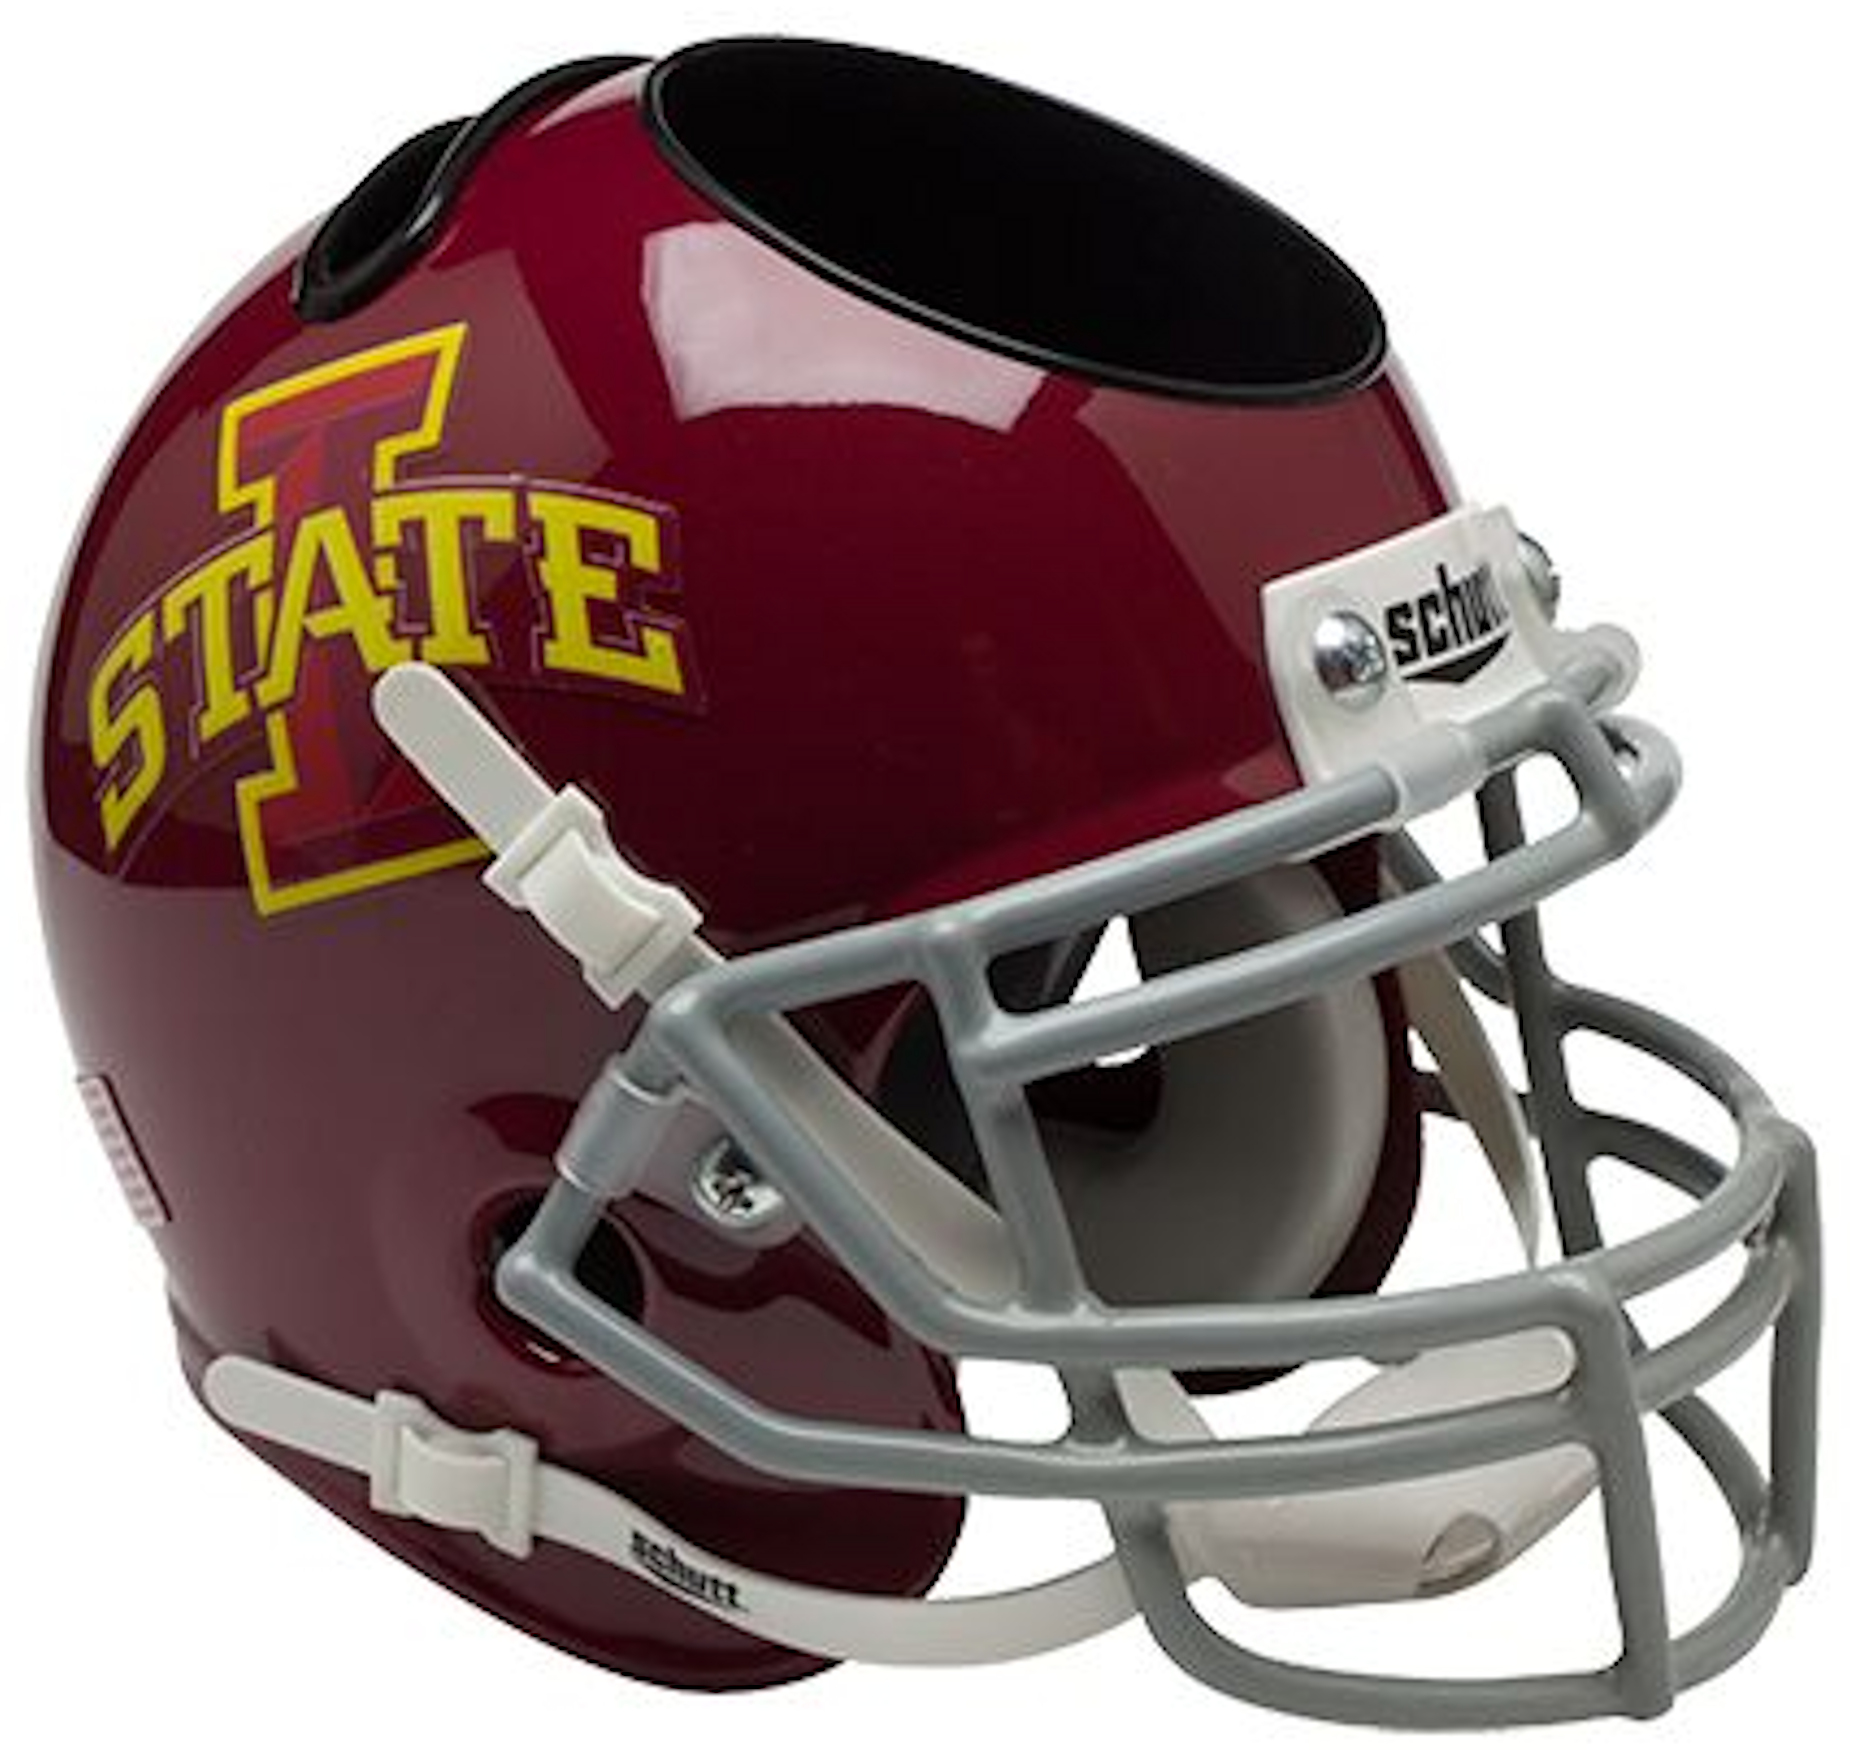 Iowa State Cyclones Miniature Football Helmet Desk Caddy